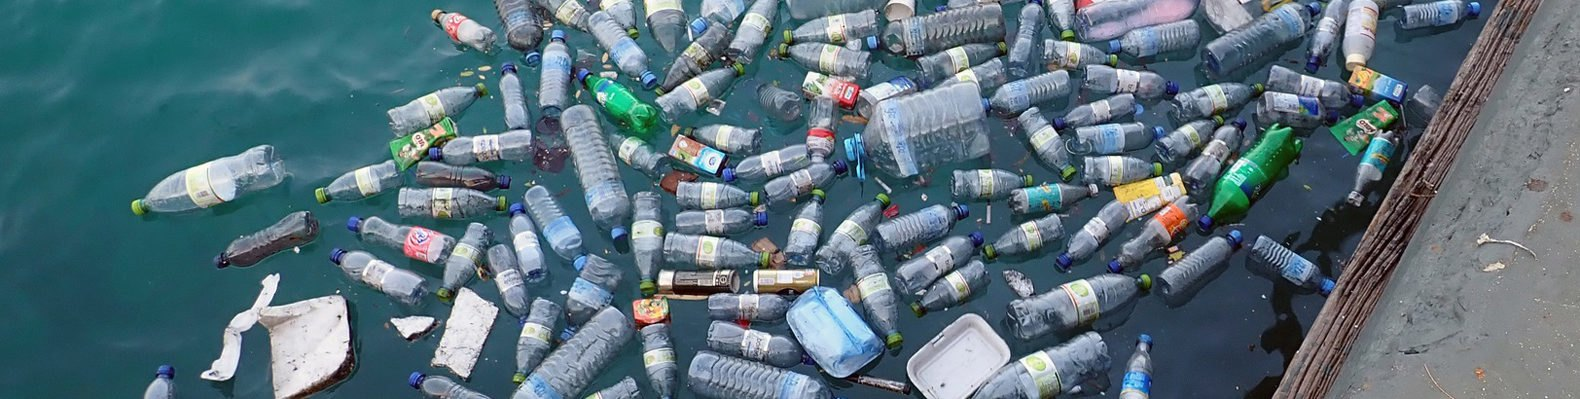 plastic bottles and trash in water